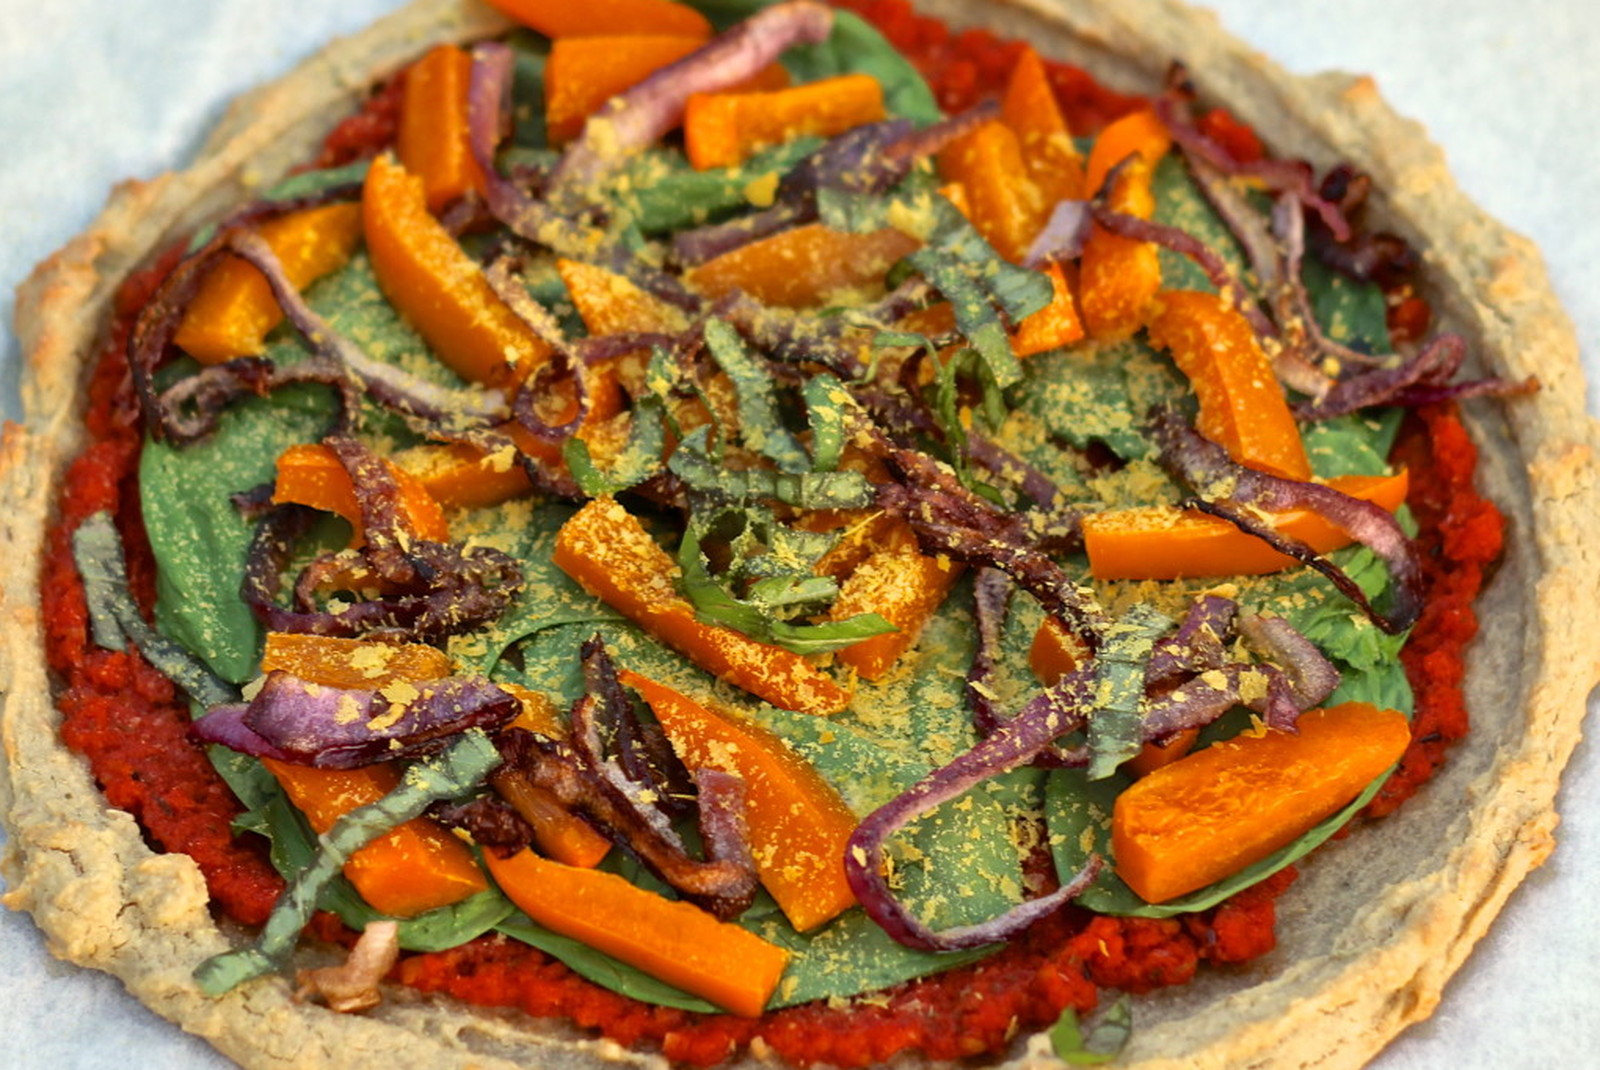 Quick and Easy Personal Veggie Pizza and Homemade Sauce [Vegan, Gluten-Free]